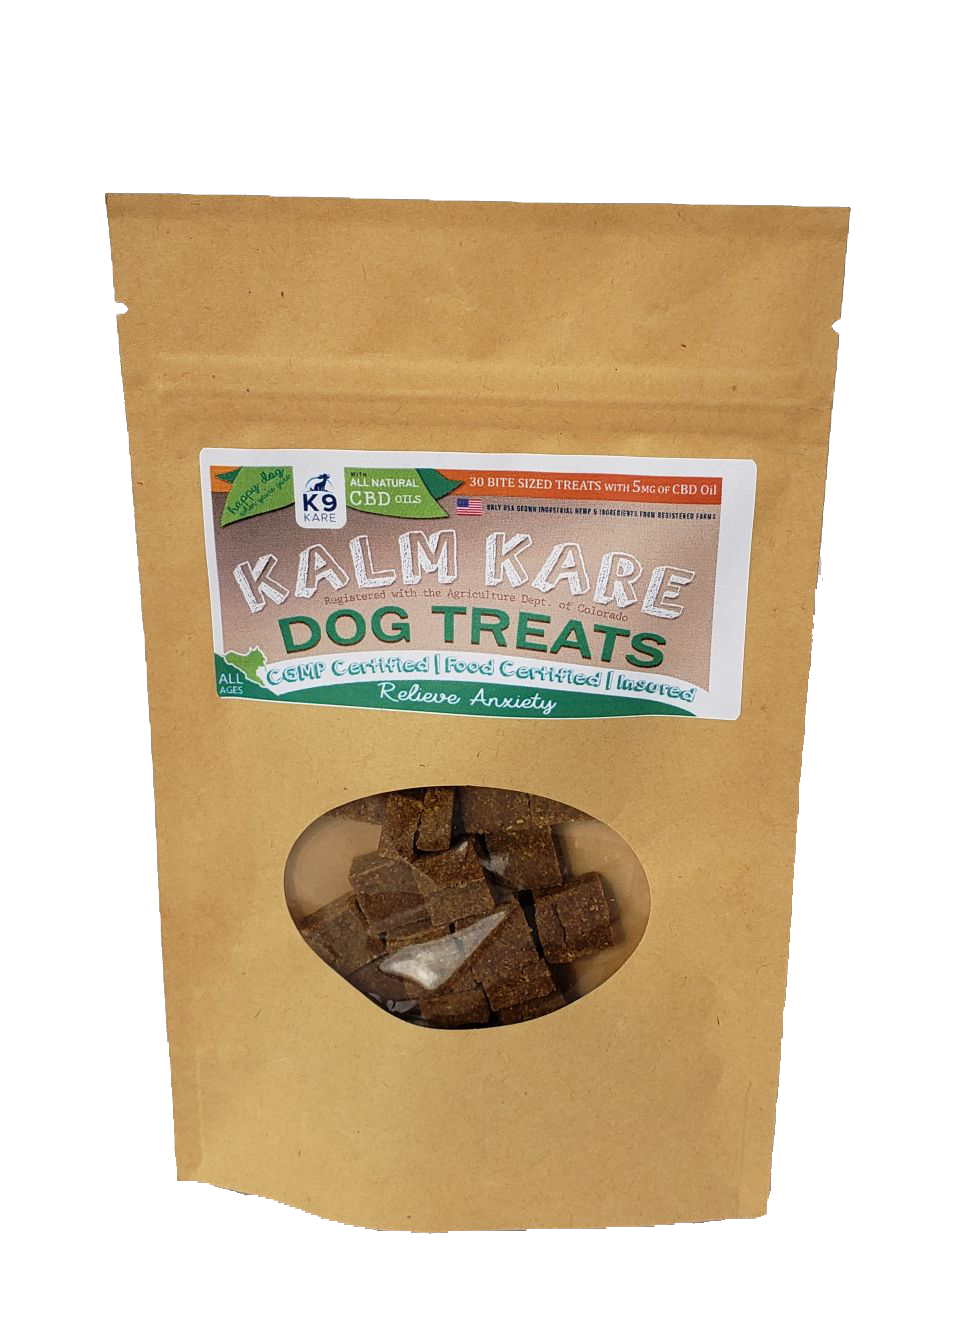 Kalm Kare - Artesian All-Natural Calming Dog Treats